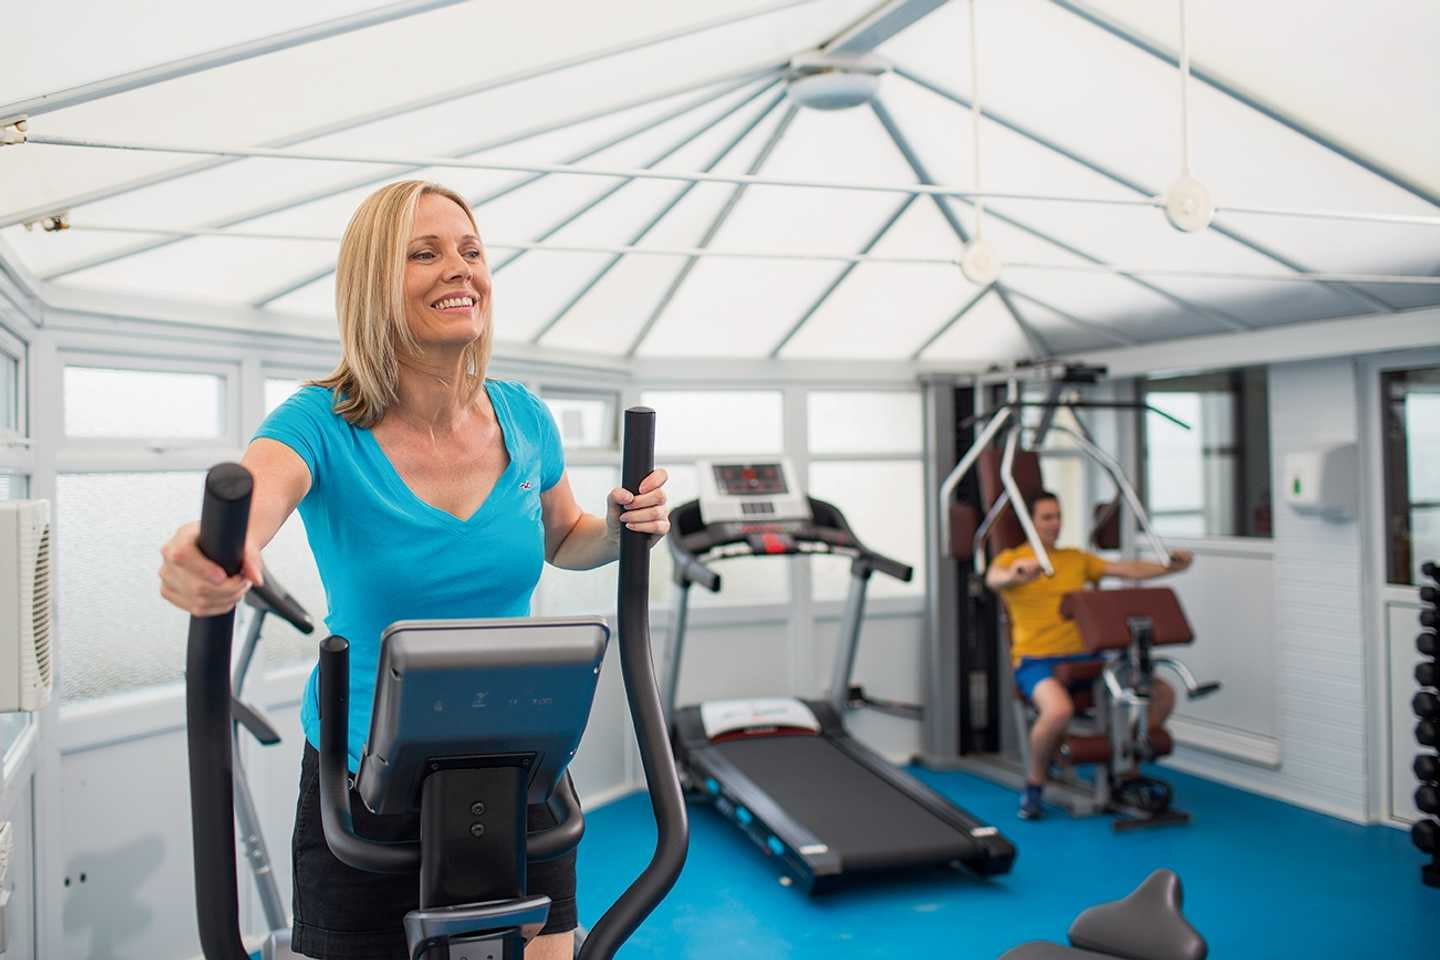 A lady working out on the cross trainer in the owners' gym